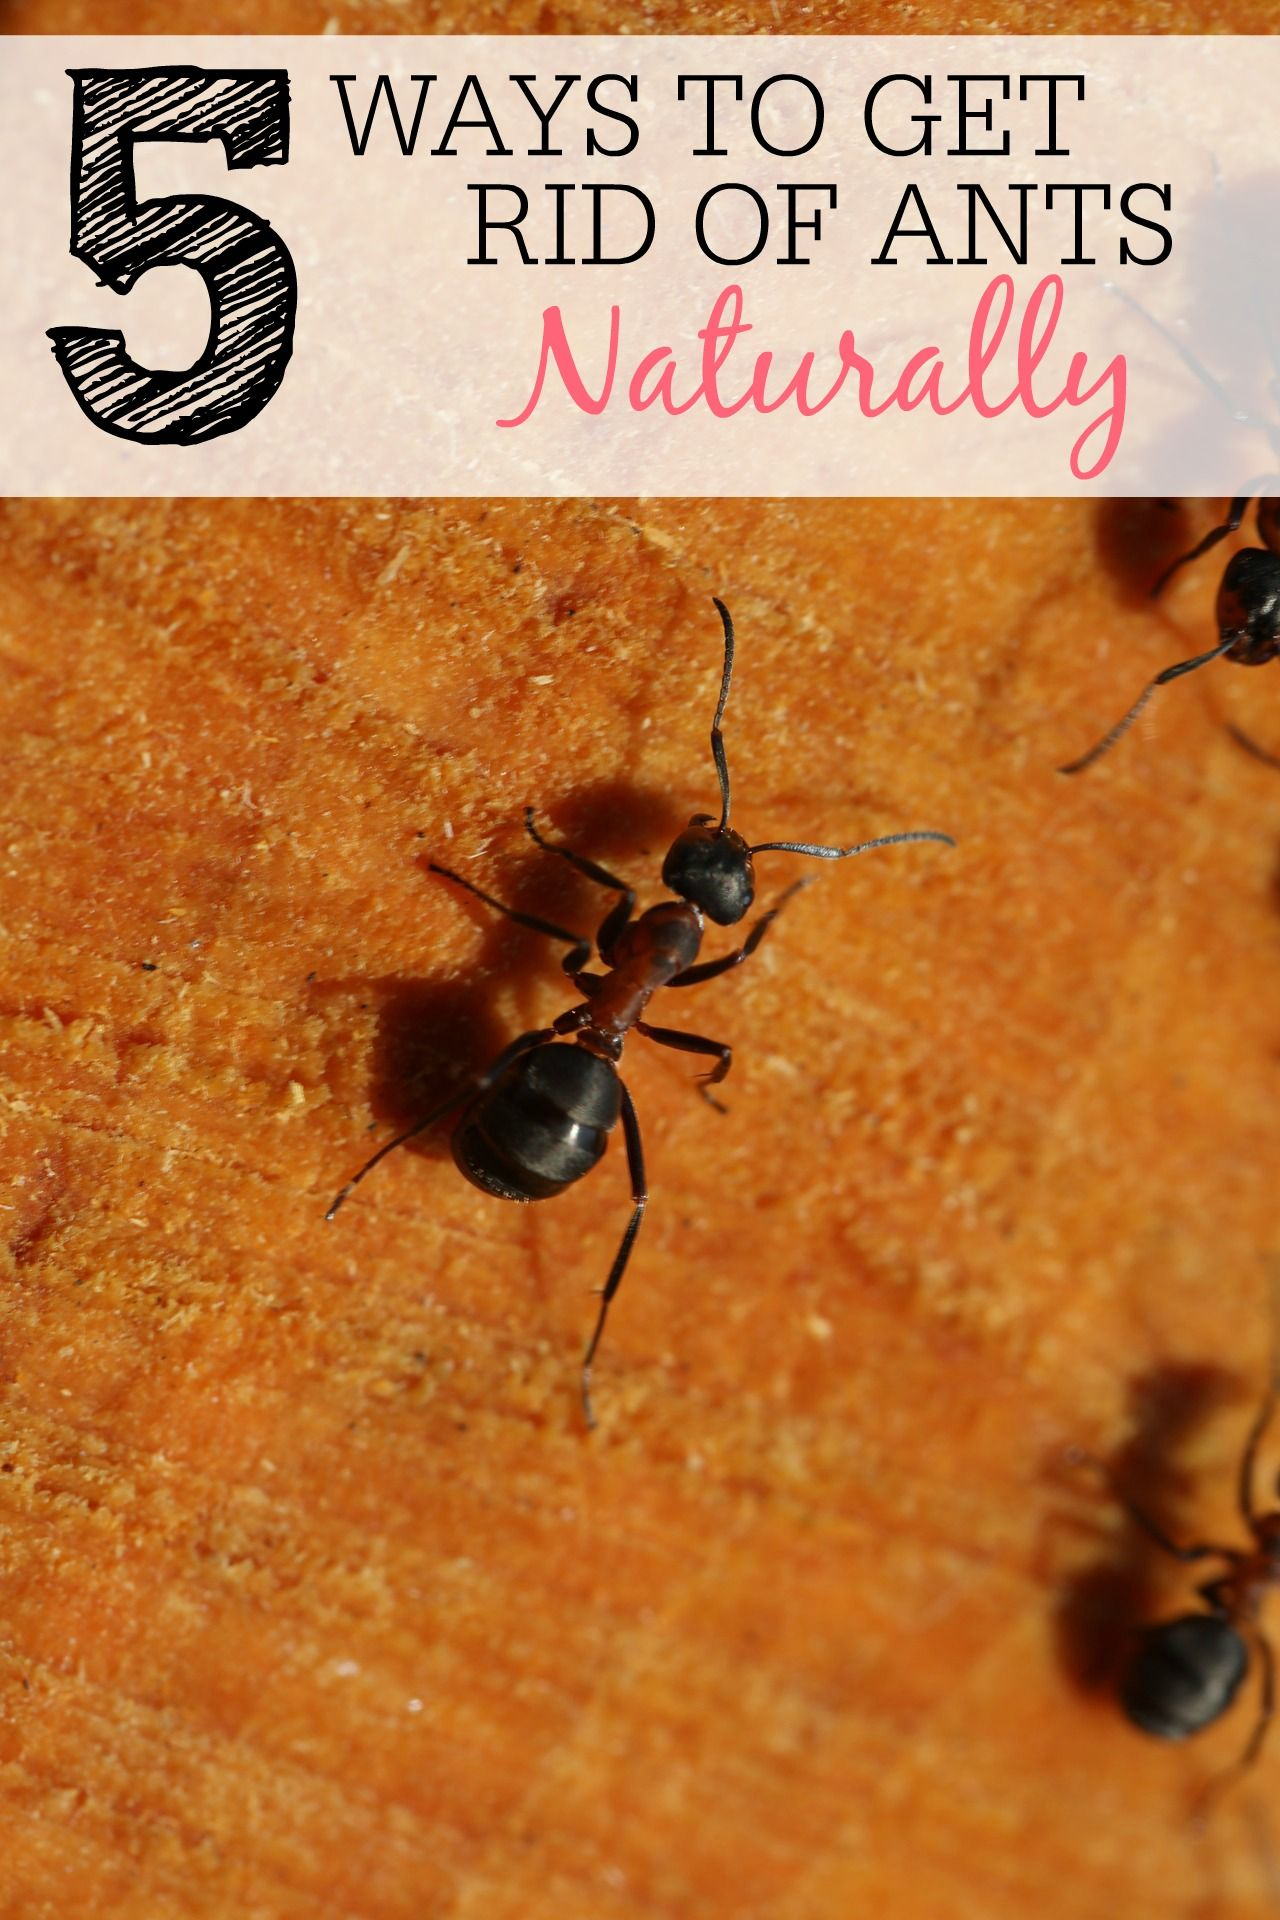 How To Get Rid Of Ants Naturally With Images Rid Of Ants Get